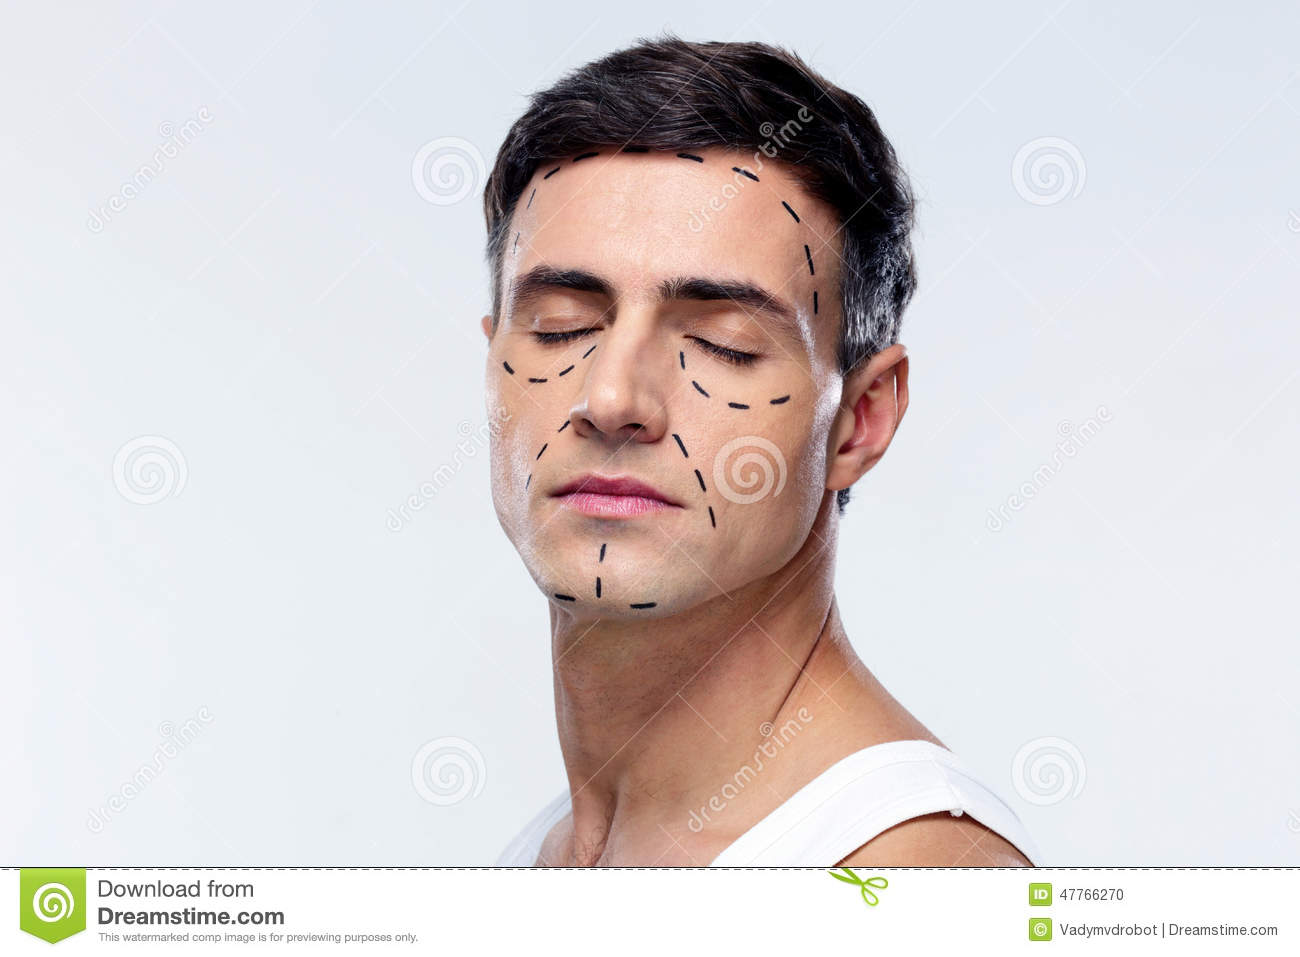 Man with closed eyes